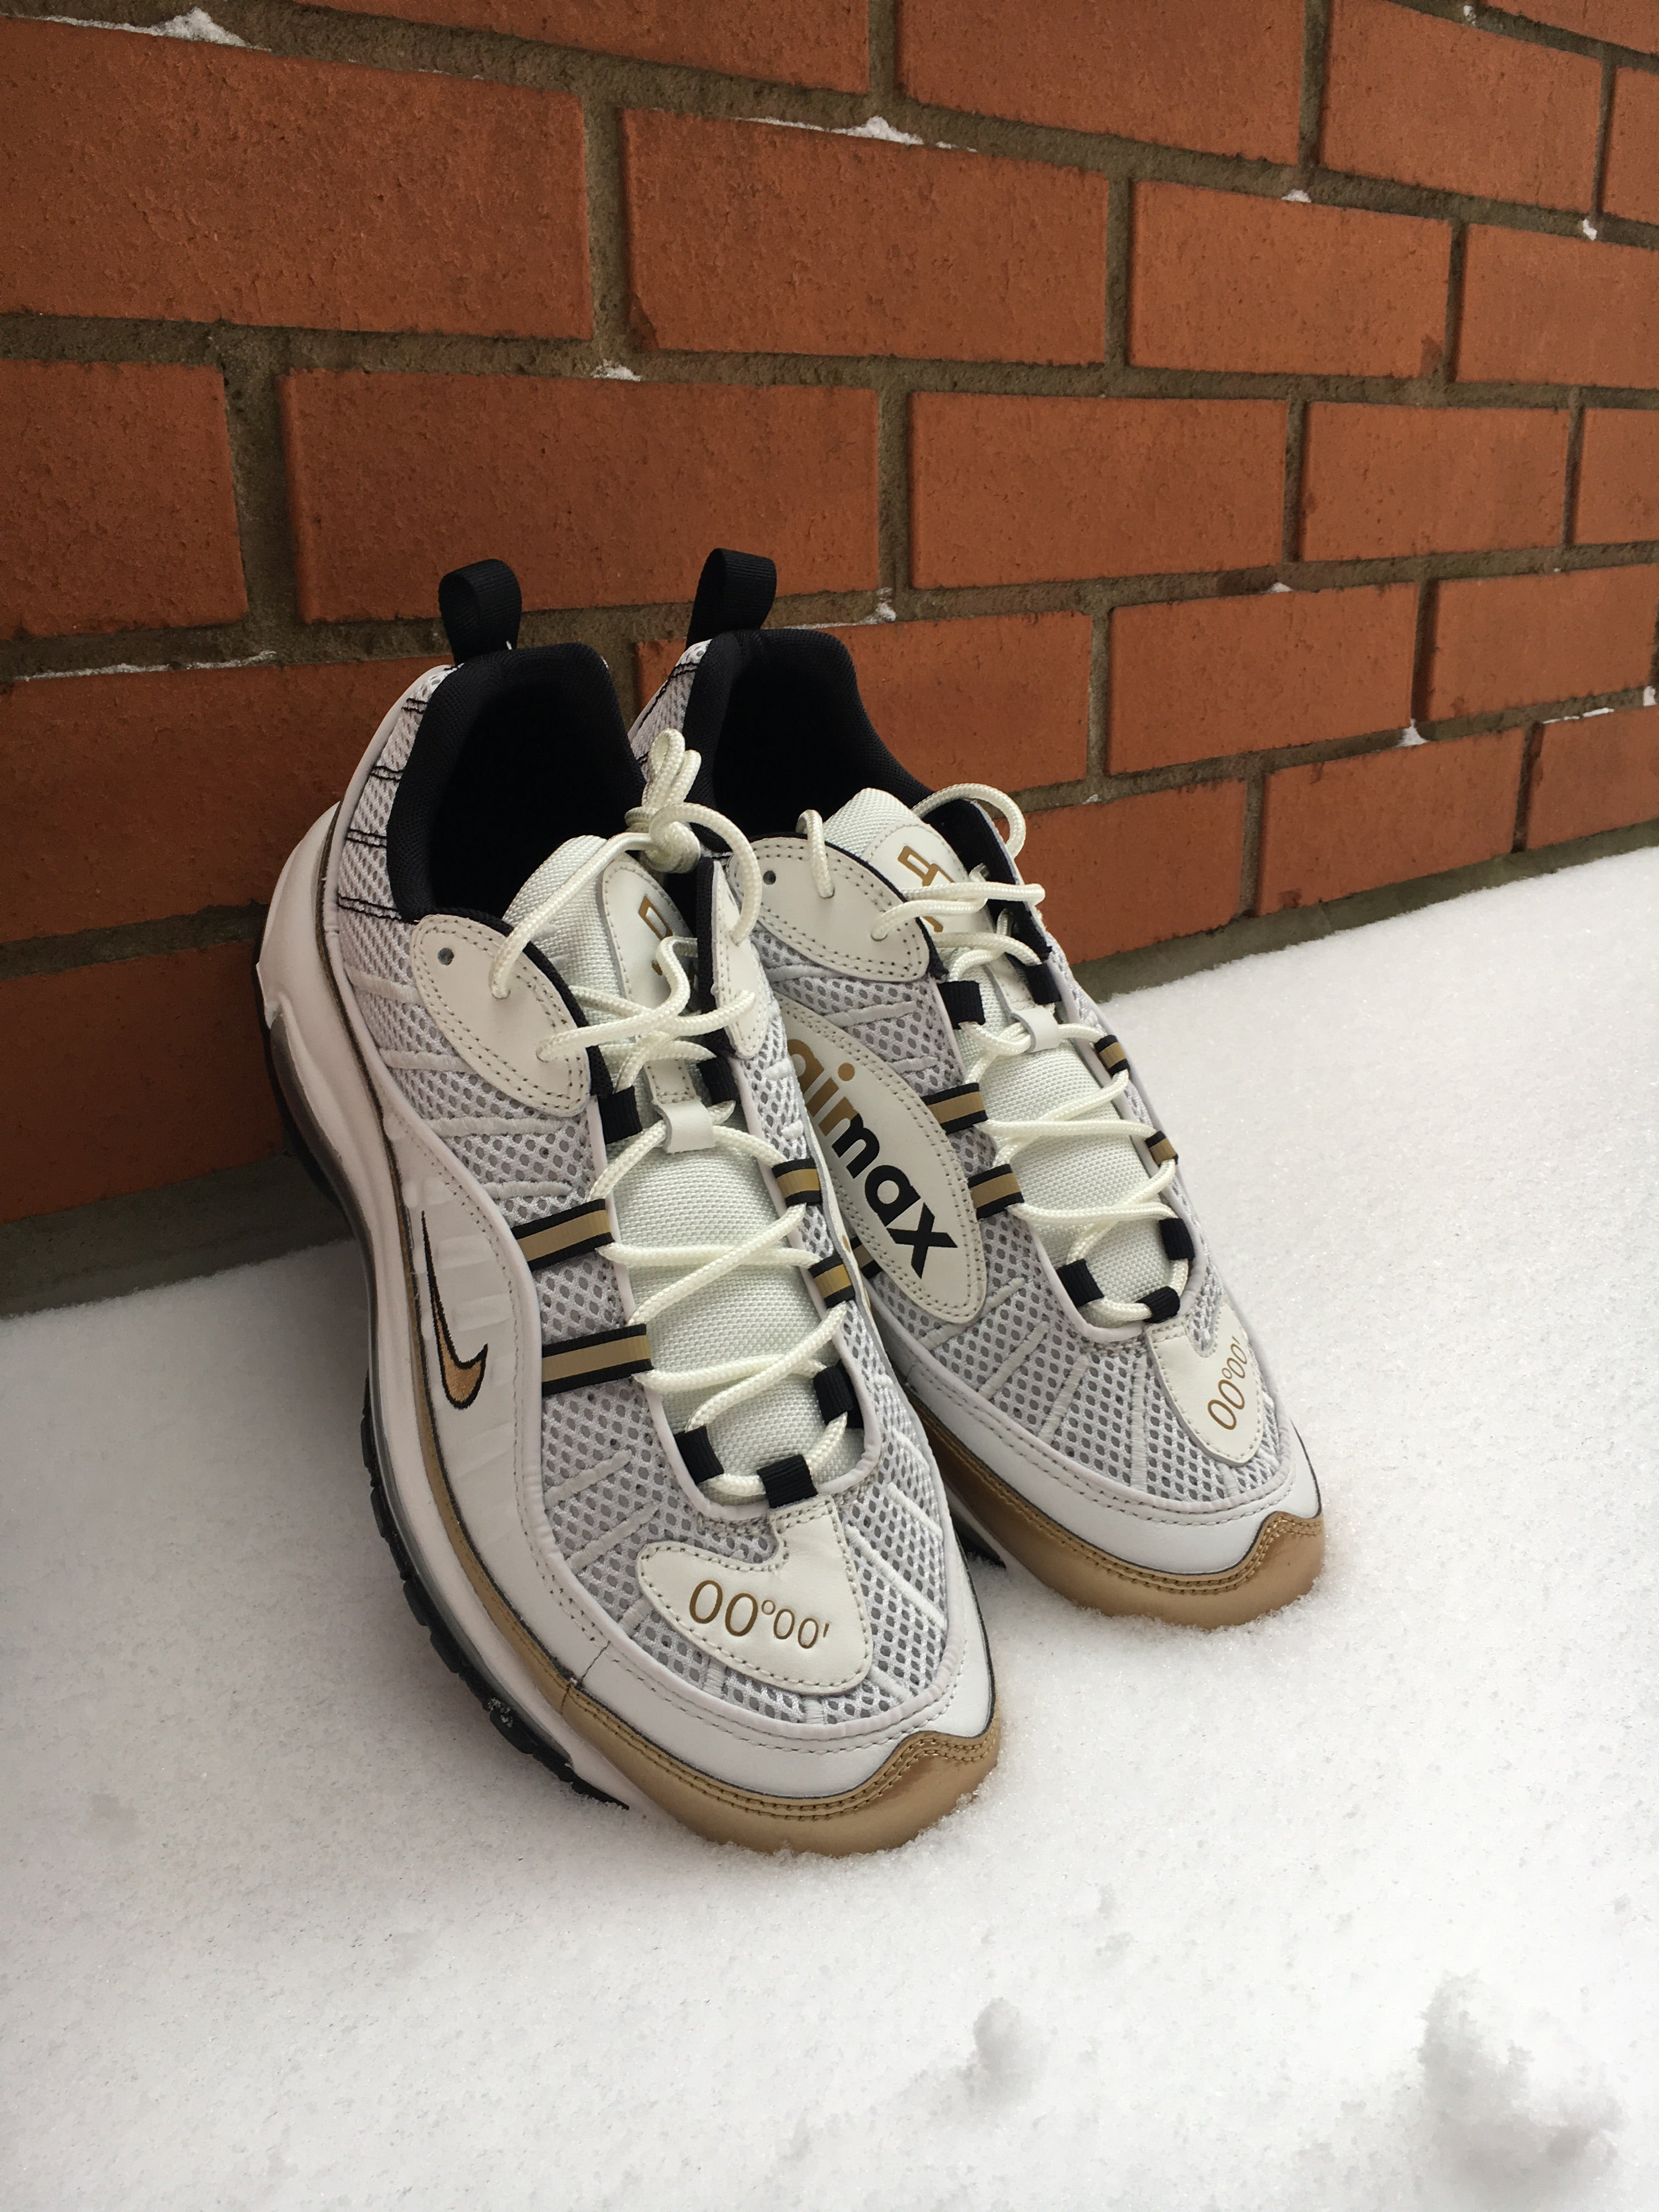 2e2305e5bc ... aj6302 100 summit white metallic gold size 6.5 uk; image of nike air  max 98 uk prime meridian white